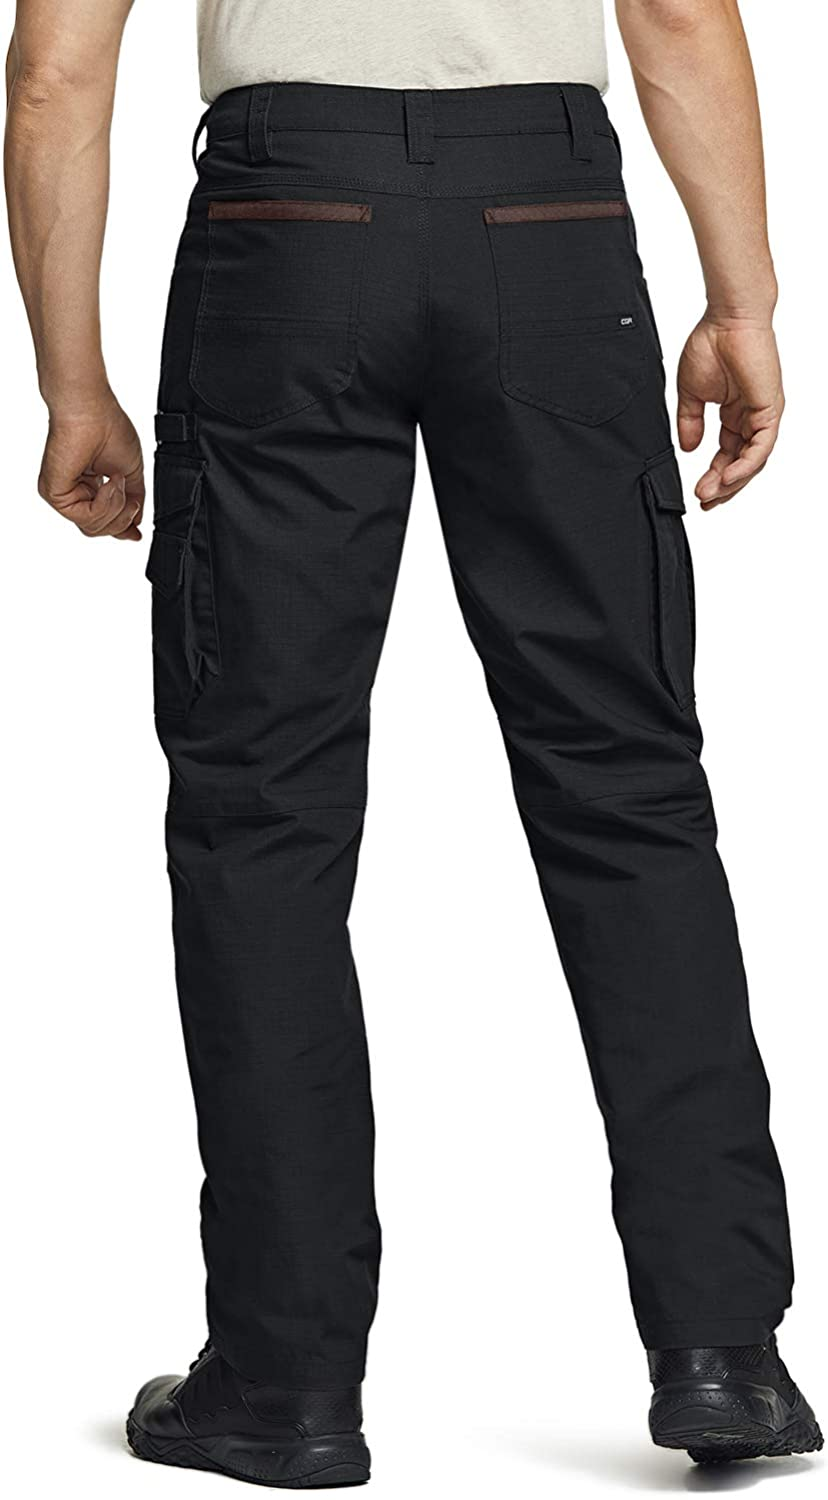 Outdoor Utility Operator EDC Straight//Cargo Pants Water Repellent Tactical Pants CQR Mens Ripstop Work Pants